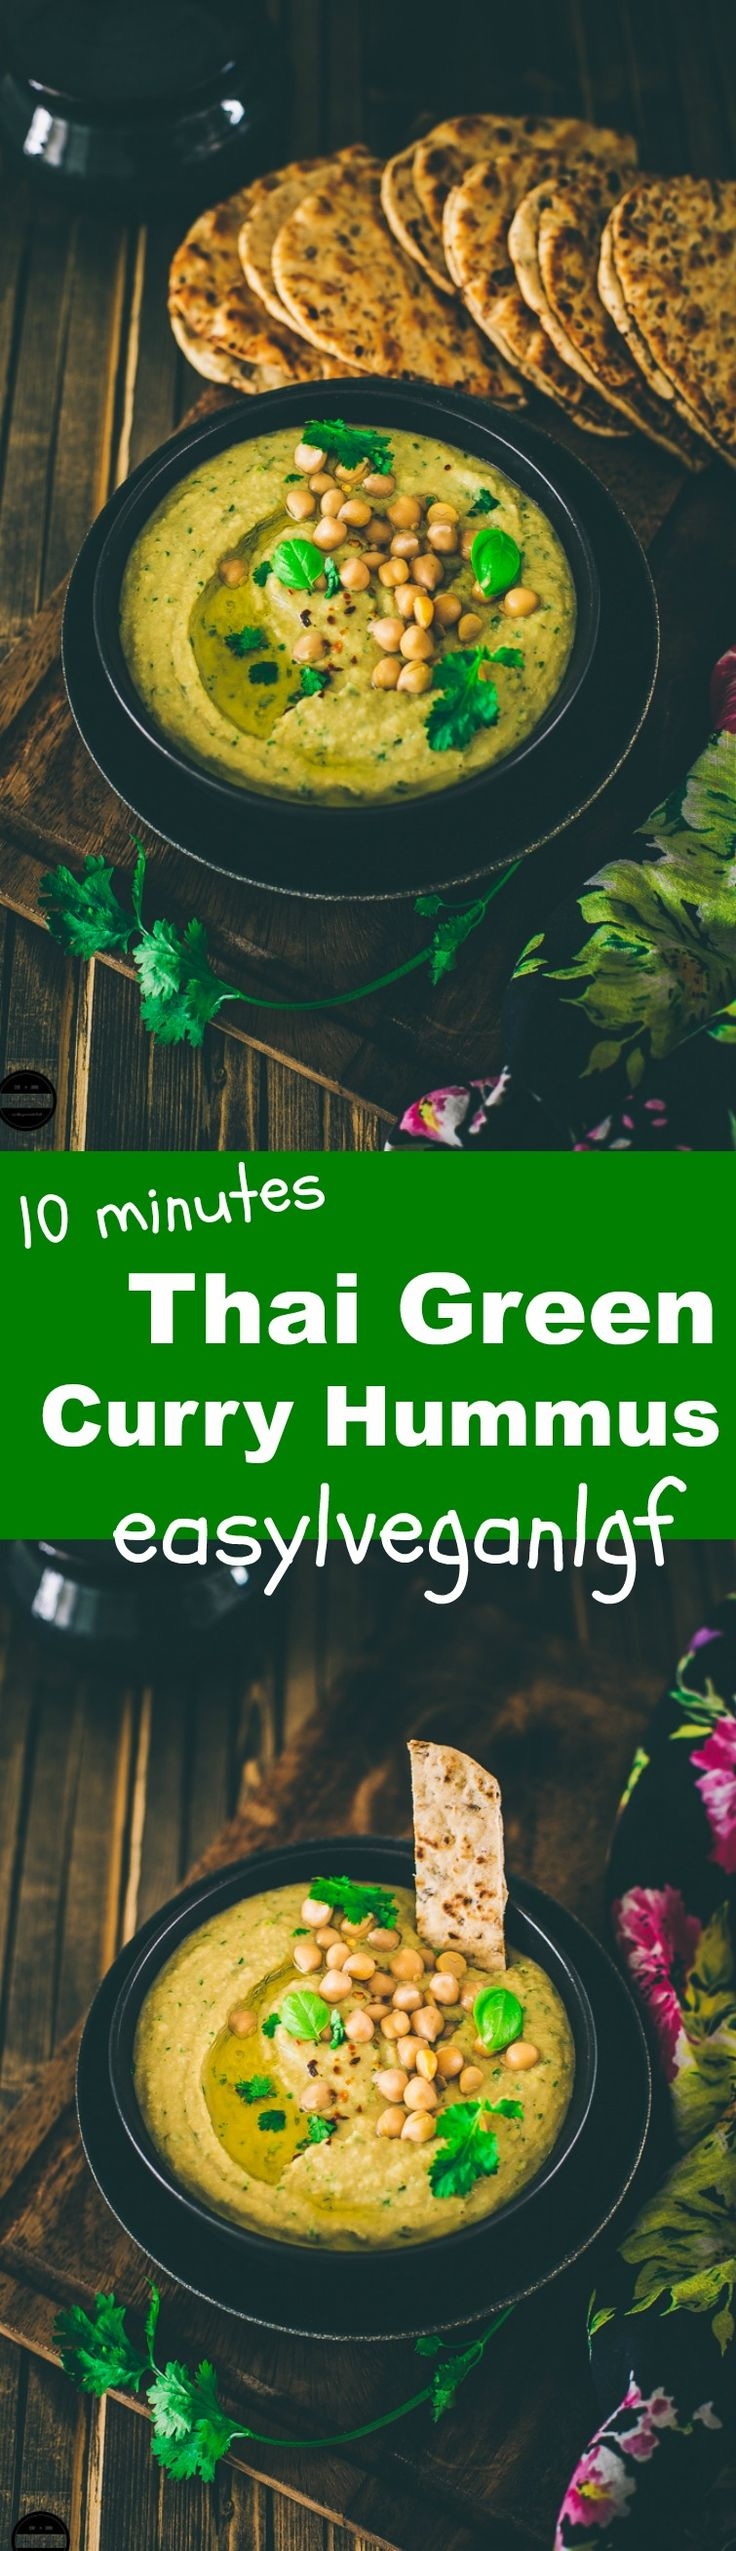 Thai green curry hummus under 1o minutes, It is vegan and gluten free.